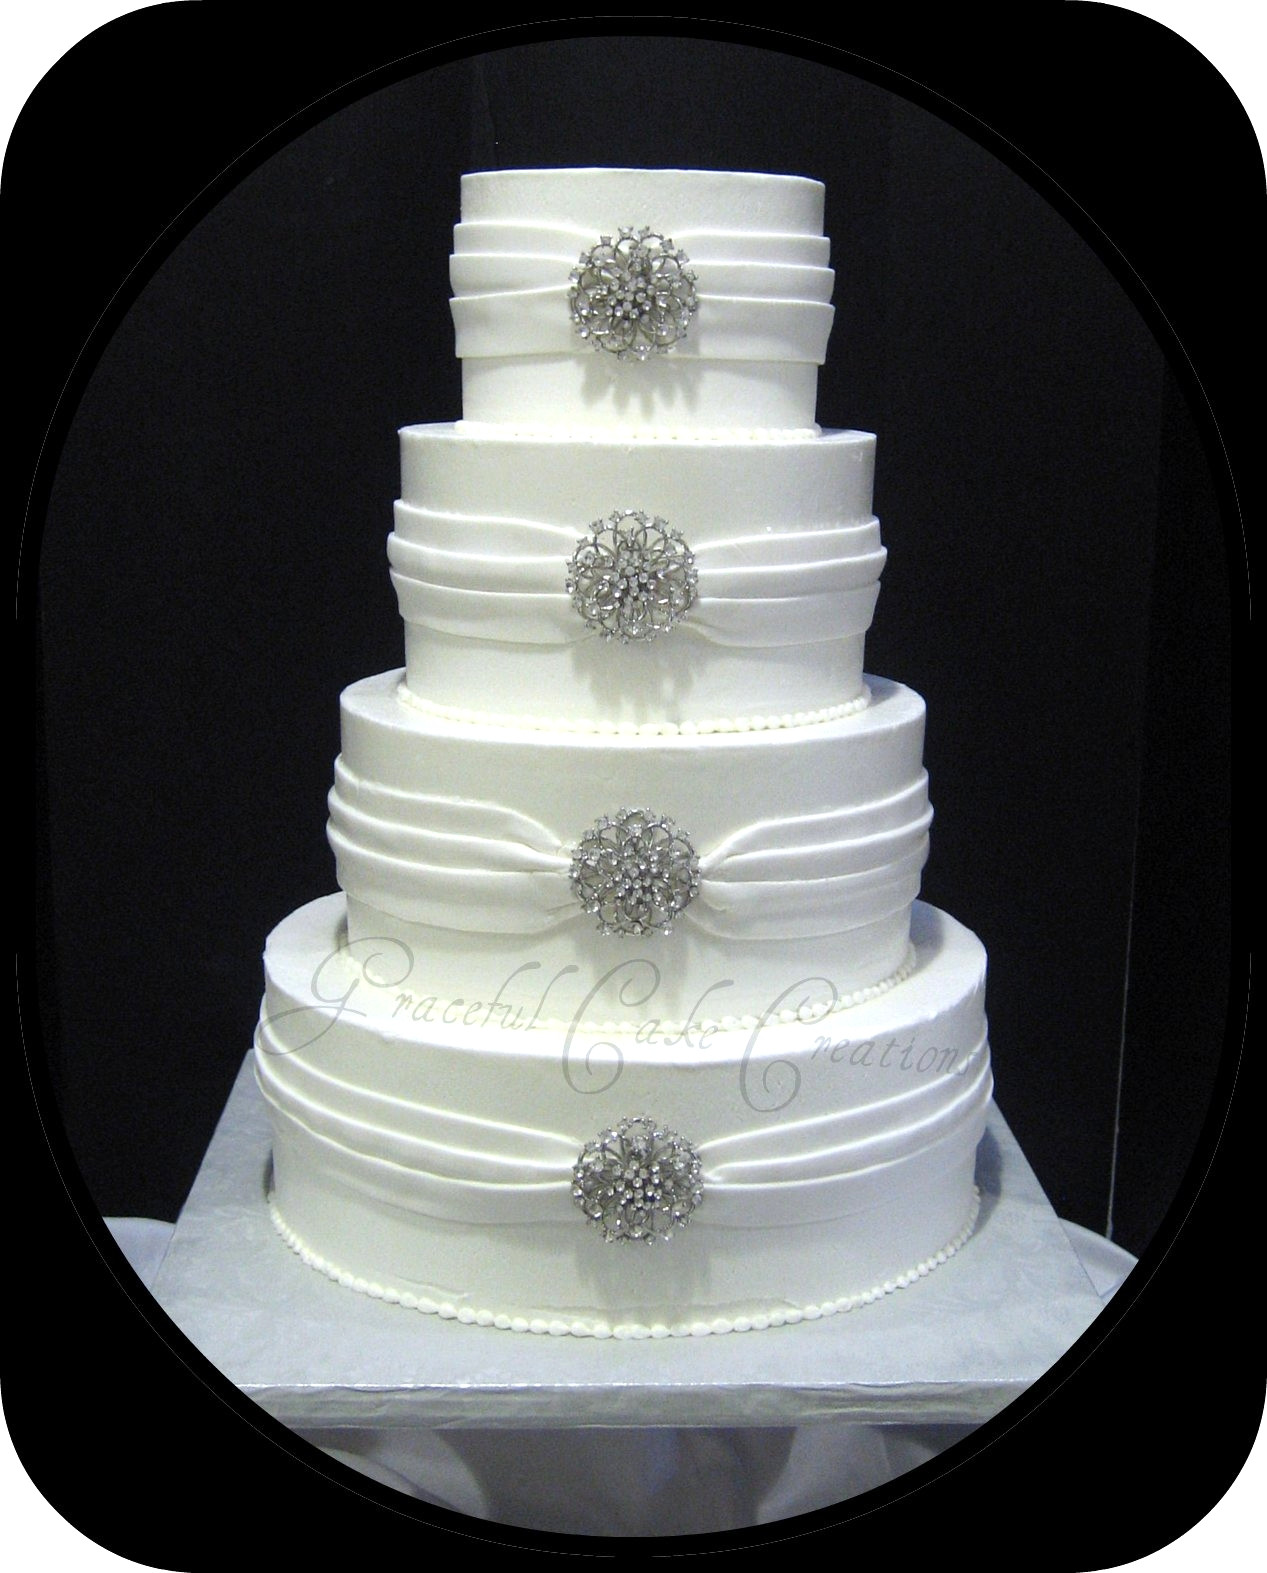 Elegant White Wedding Cakes  Elegant White Wedding Cake with Silver Jewelry